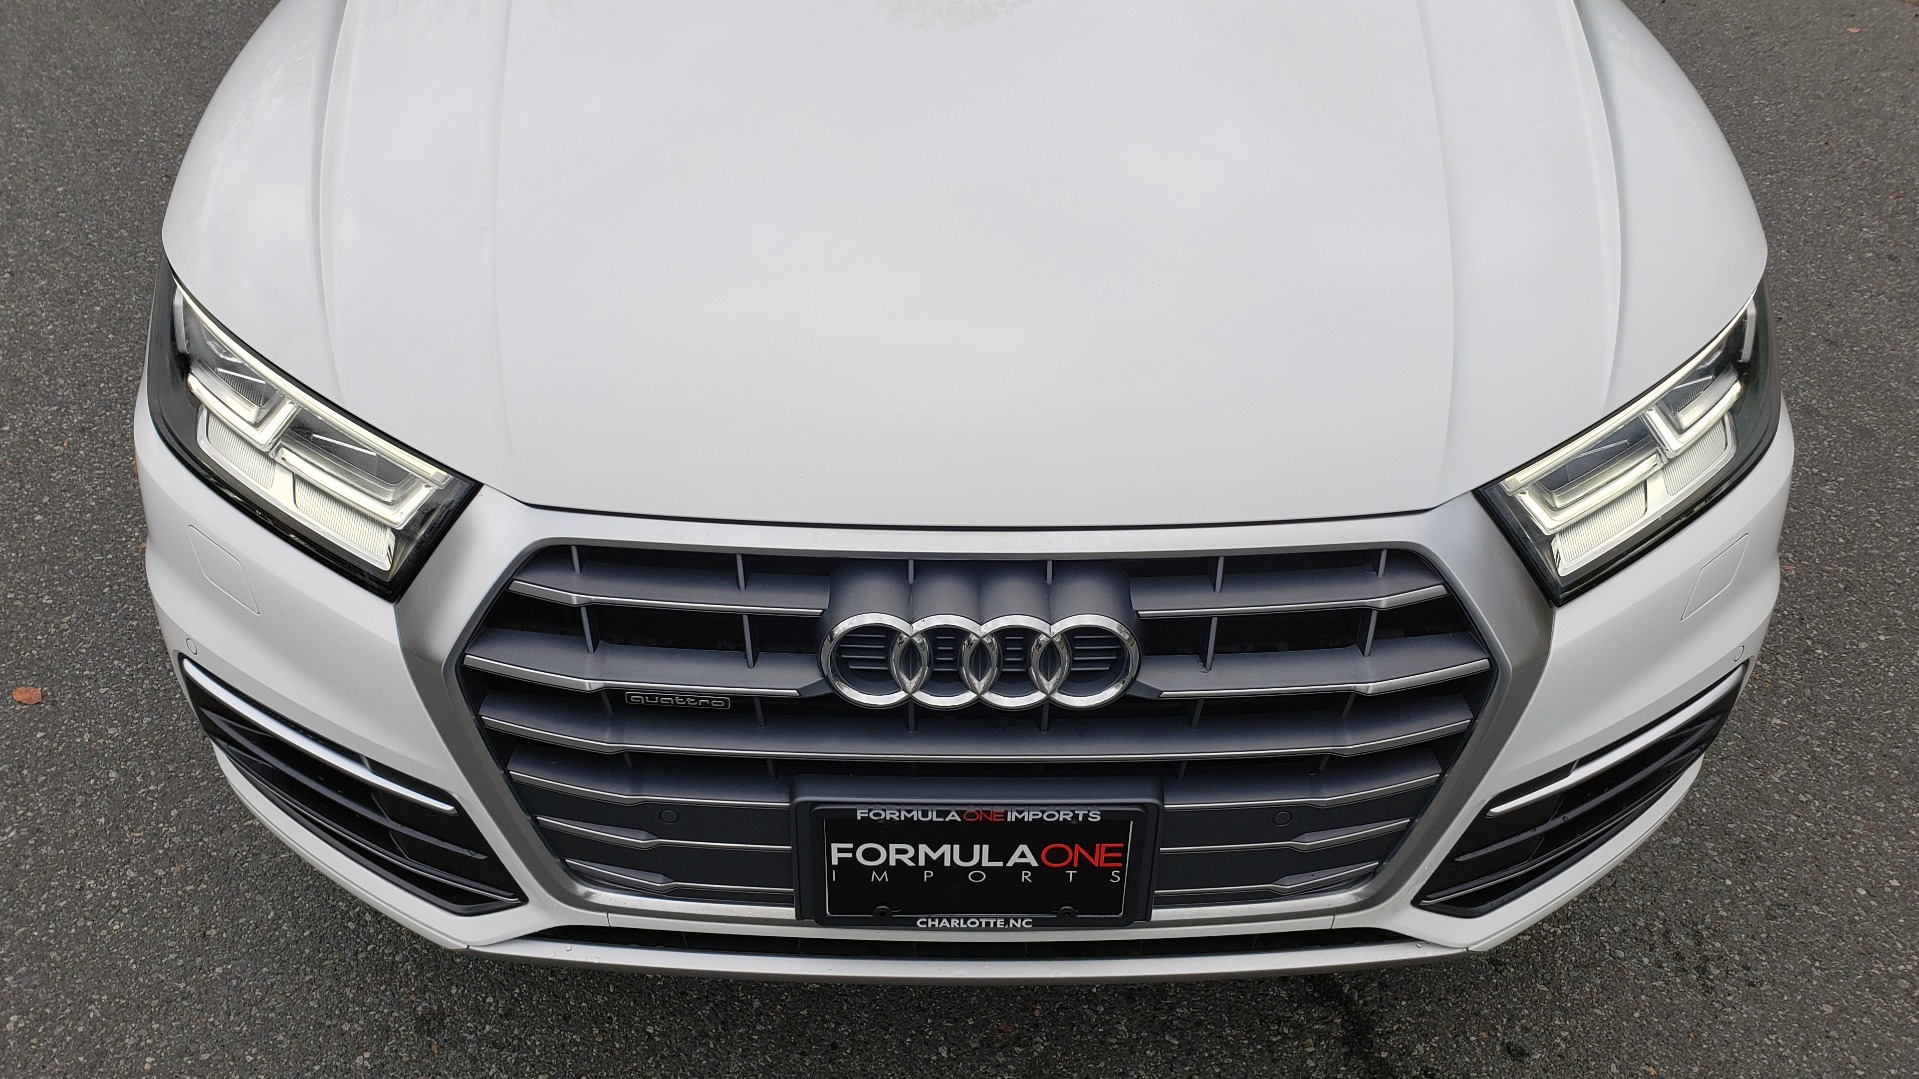 Used 2018 Audi Q5 PREMIUM PLUS / NAV PKG / SUNROOF / CLD WTHR / REARVIEW for sale Sold at Formula Imports in Charlotte NC 28227 23